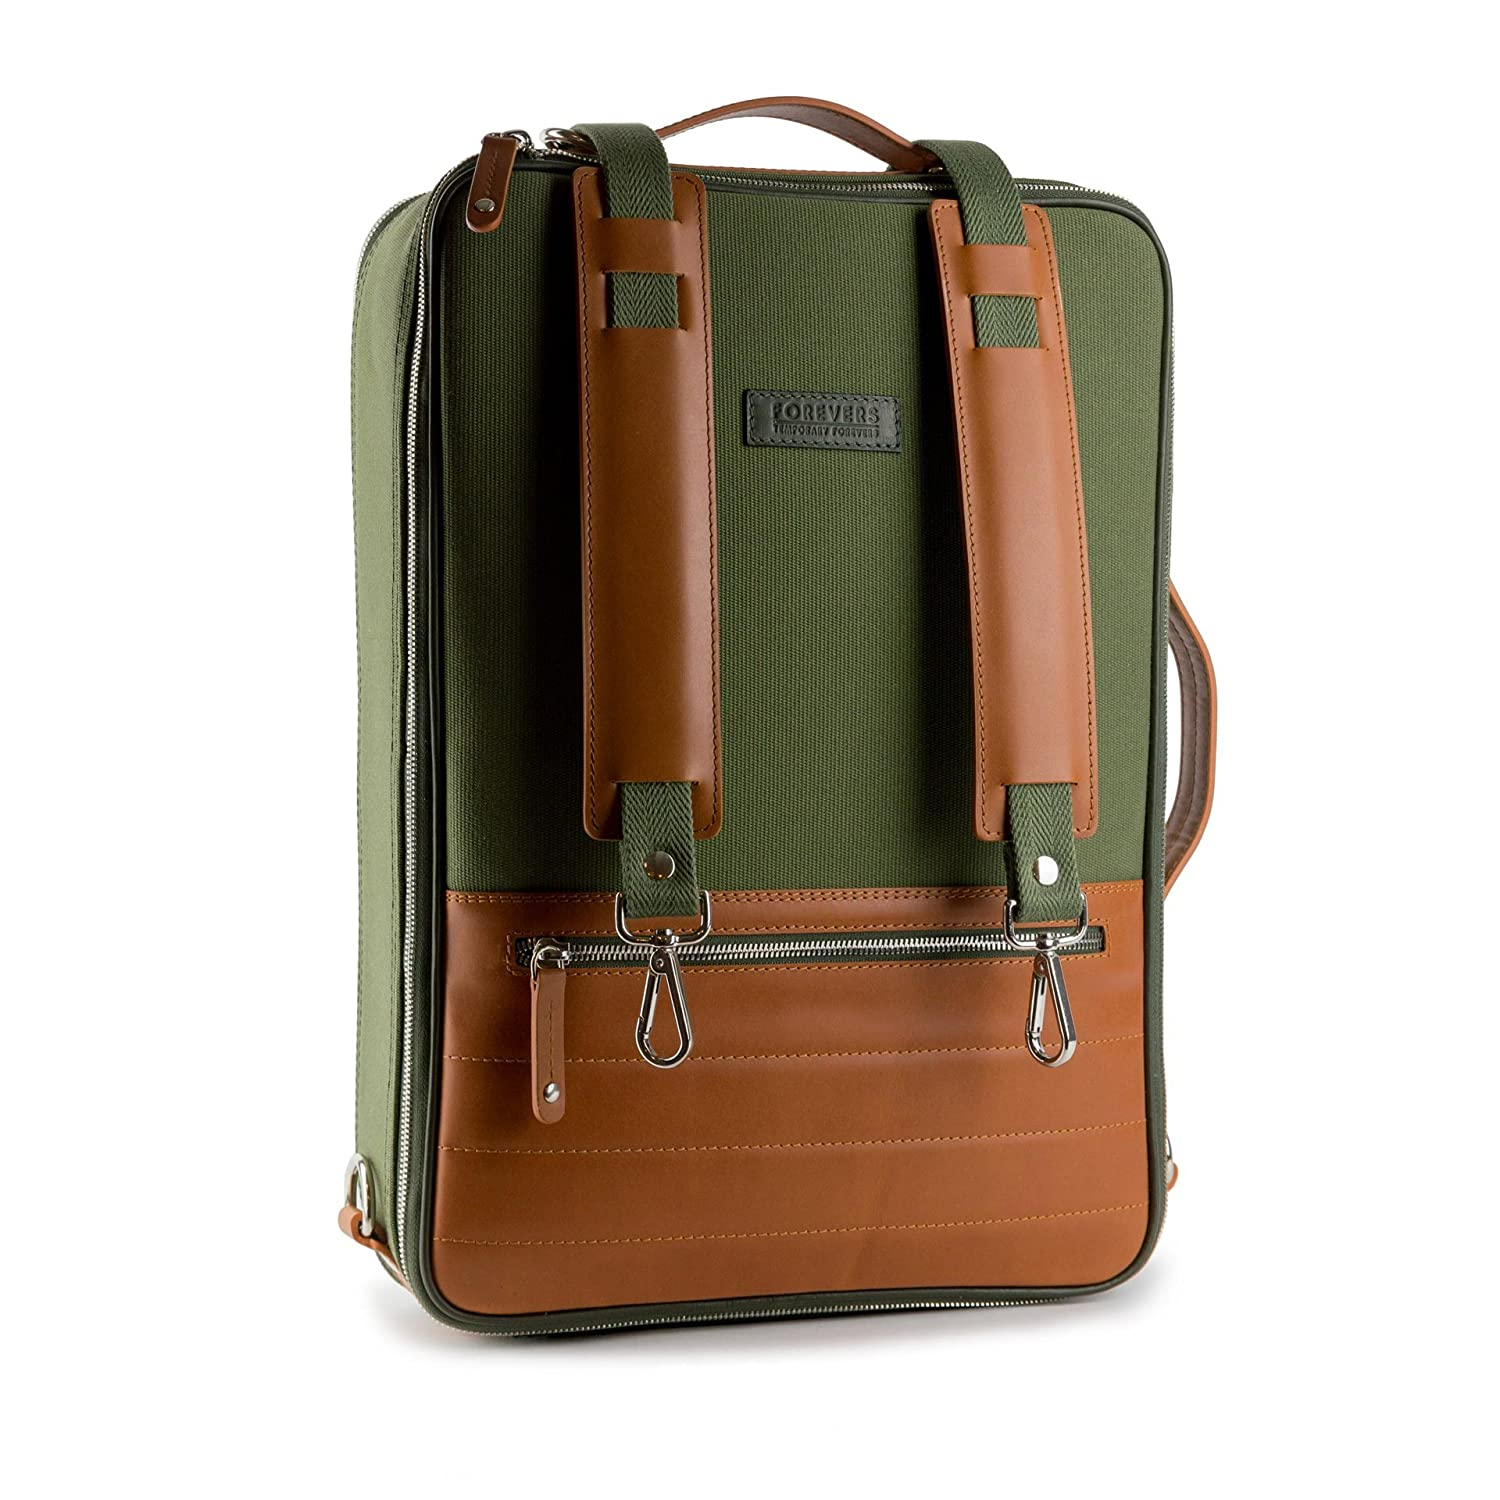 48Hr Switch Bag - Free Minimalist Leather Wallet Included - Italian Leather  and Canvas 3in1 Laptop a348a6a5ee